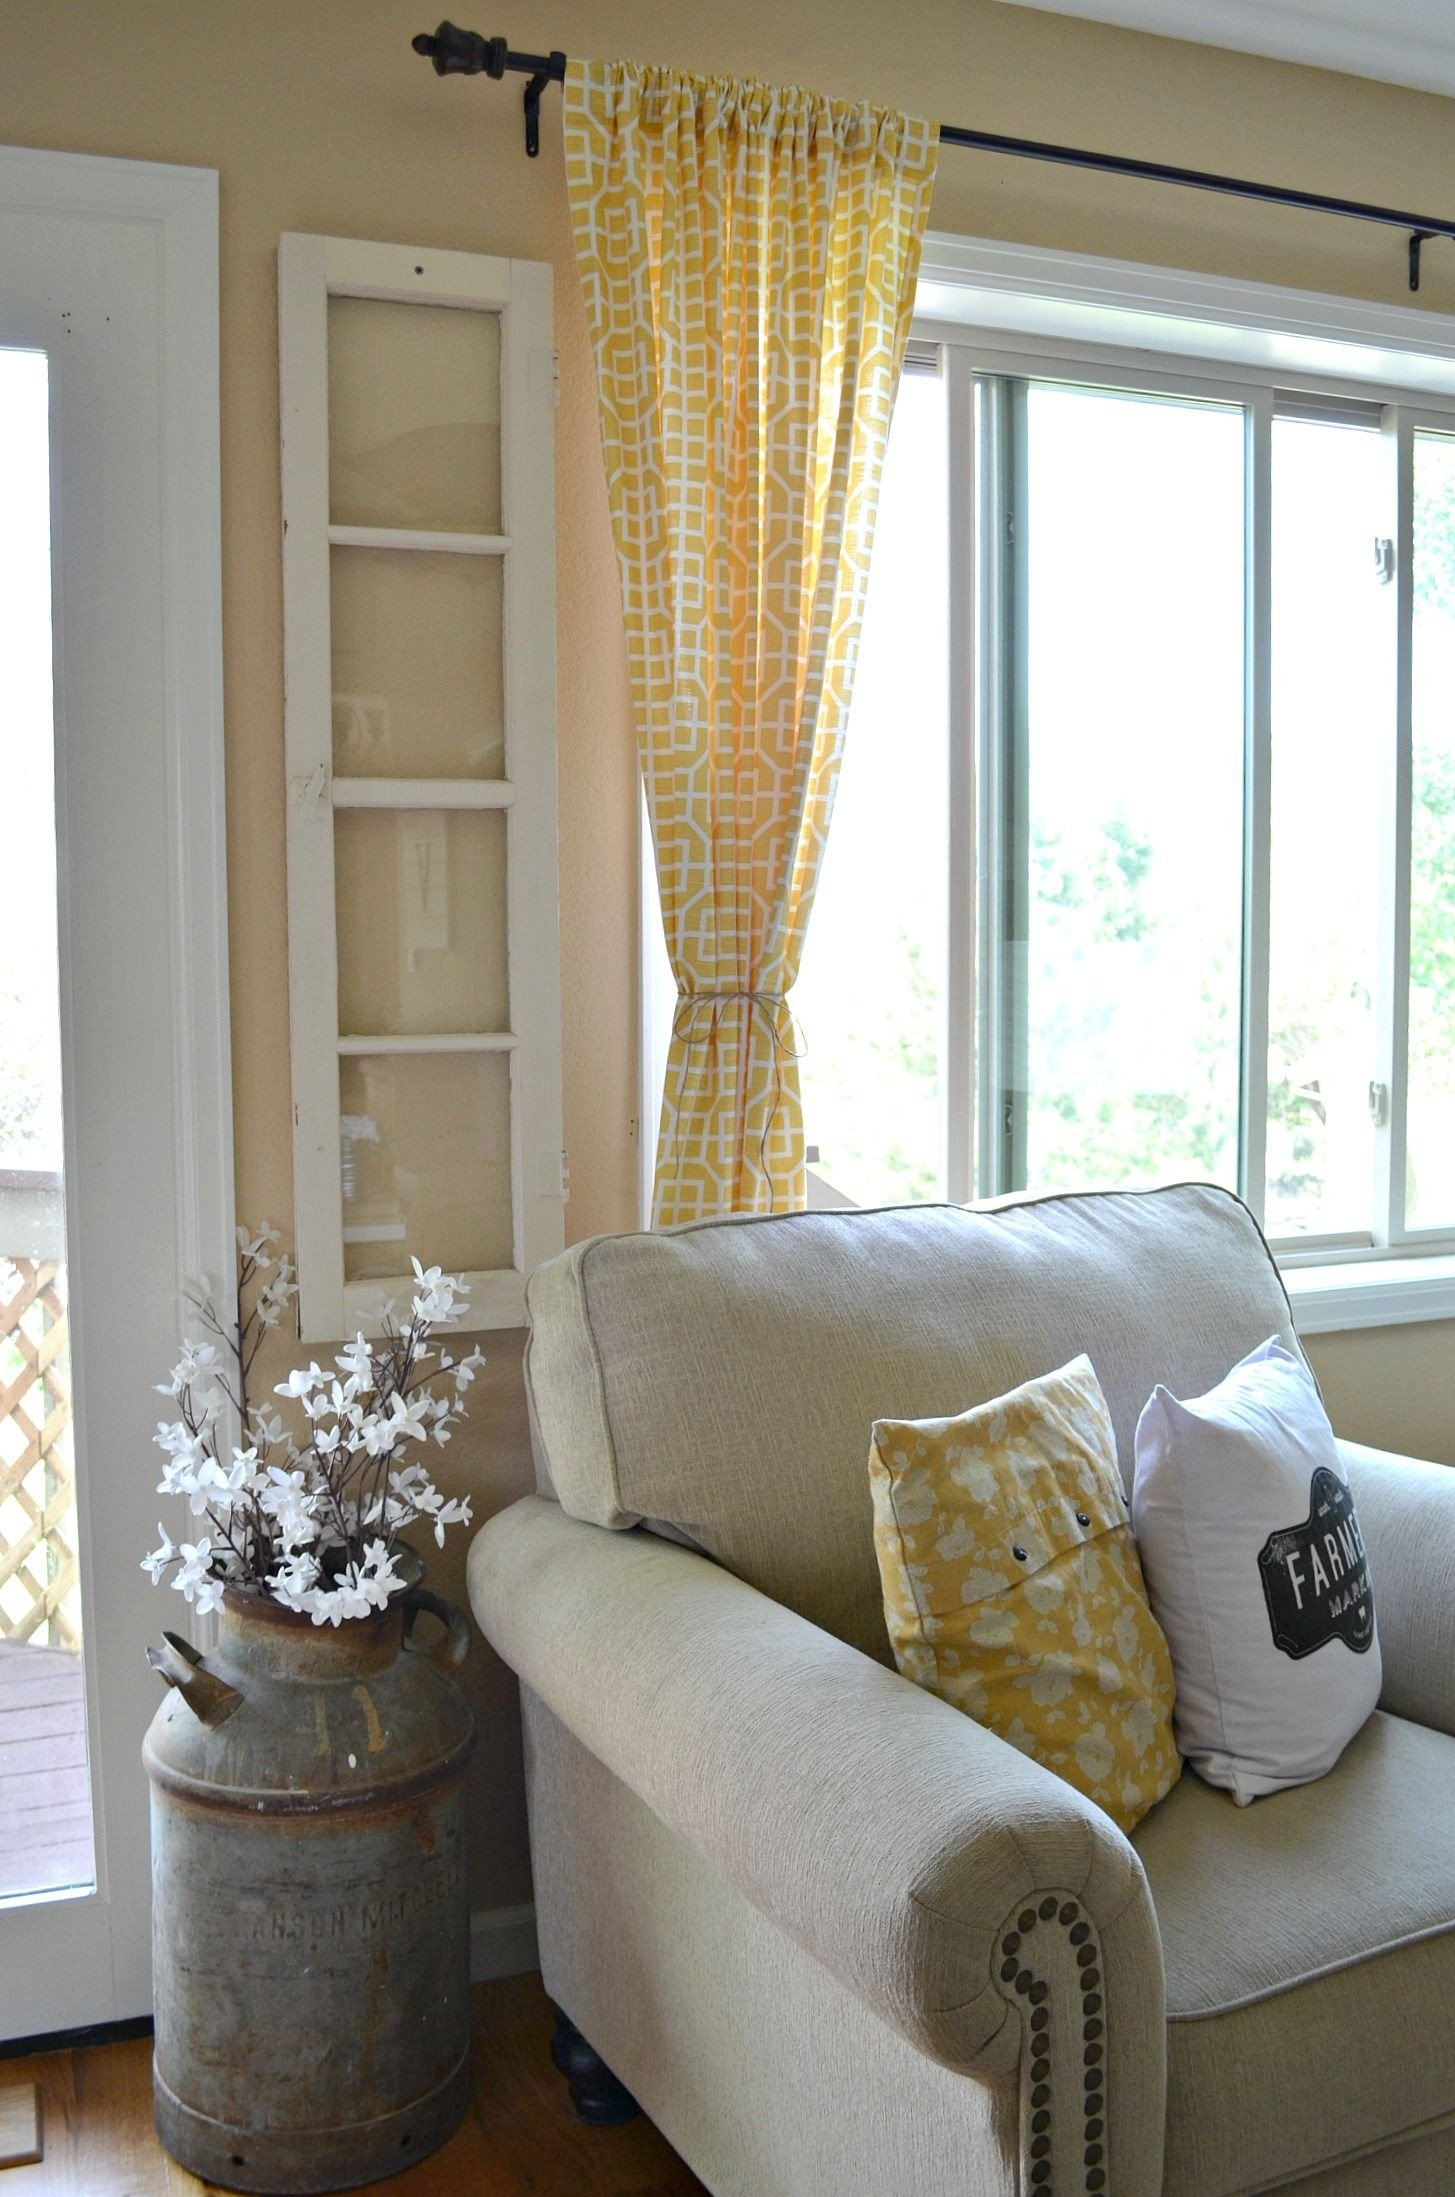 Curtains for Bedroom Windows with Designs Inspirational 4 Ways to Decorate with Old Windows